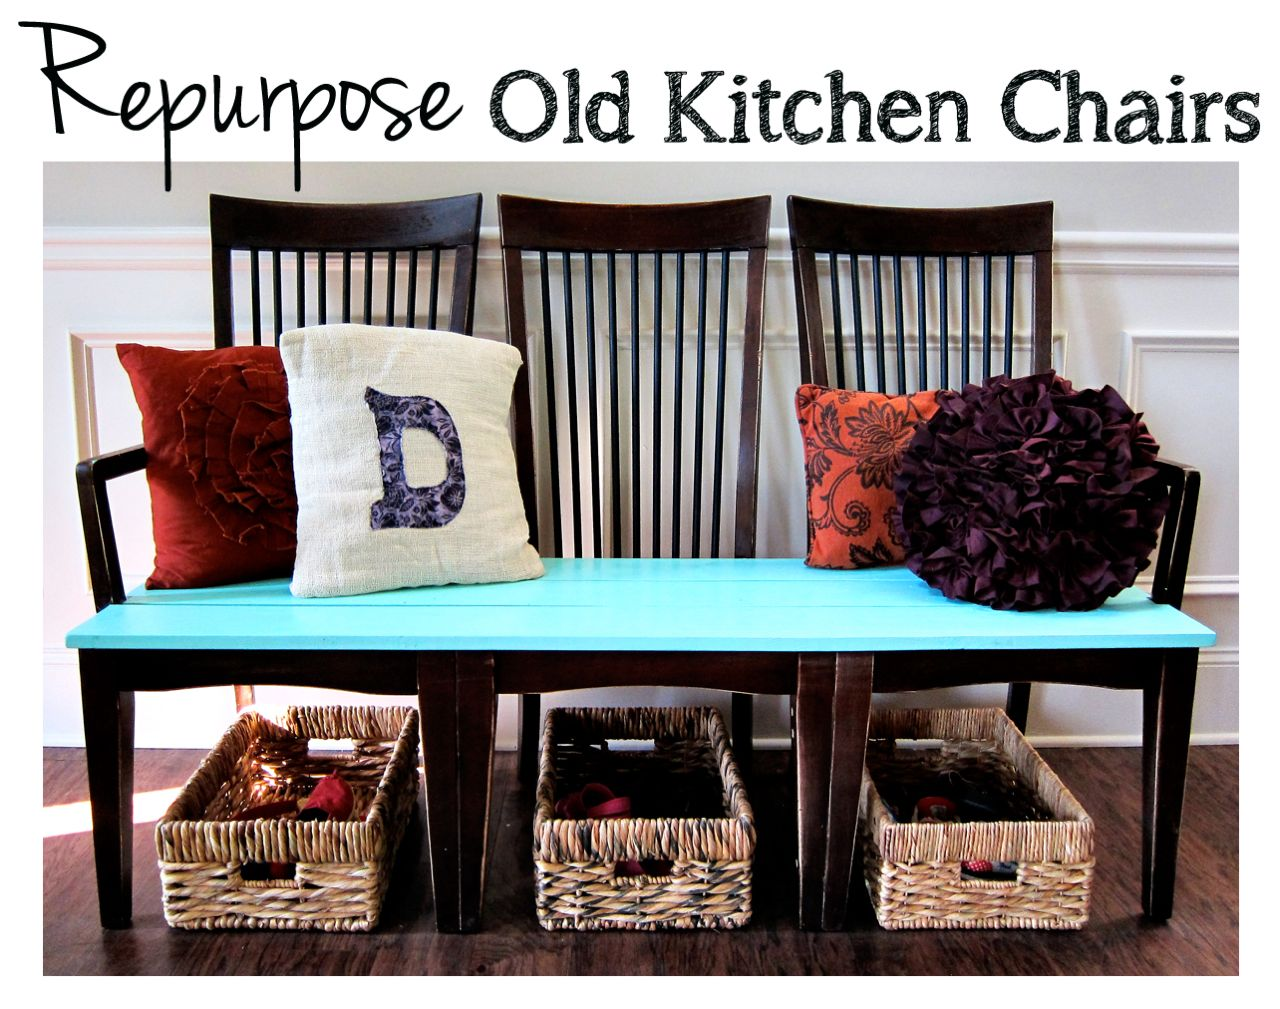 Repurposing Old Furniture repurpose old kitchen chairs - spoonful of imagination